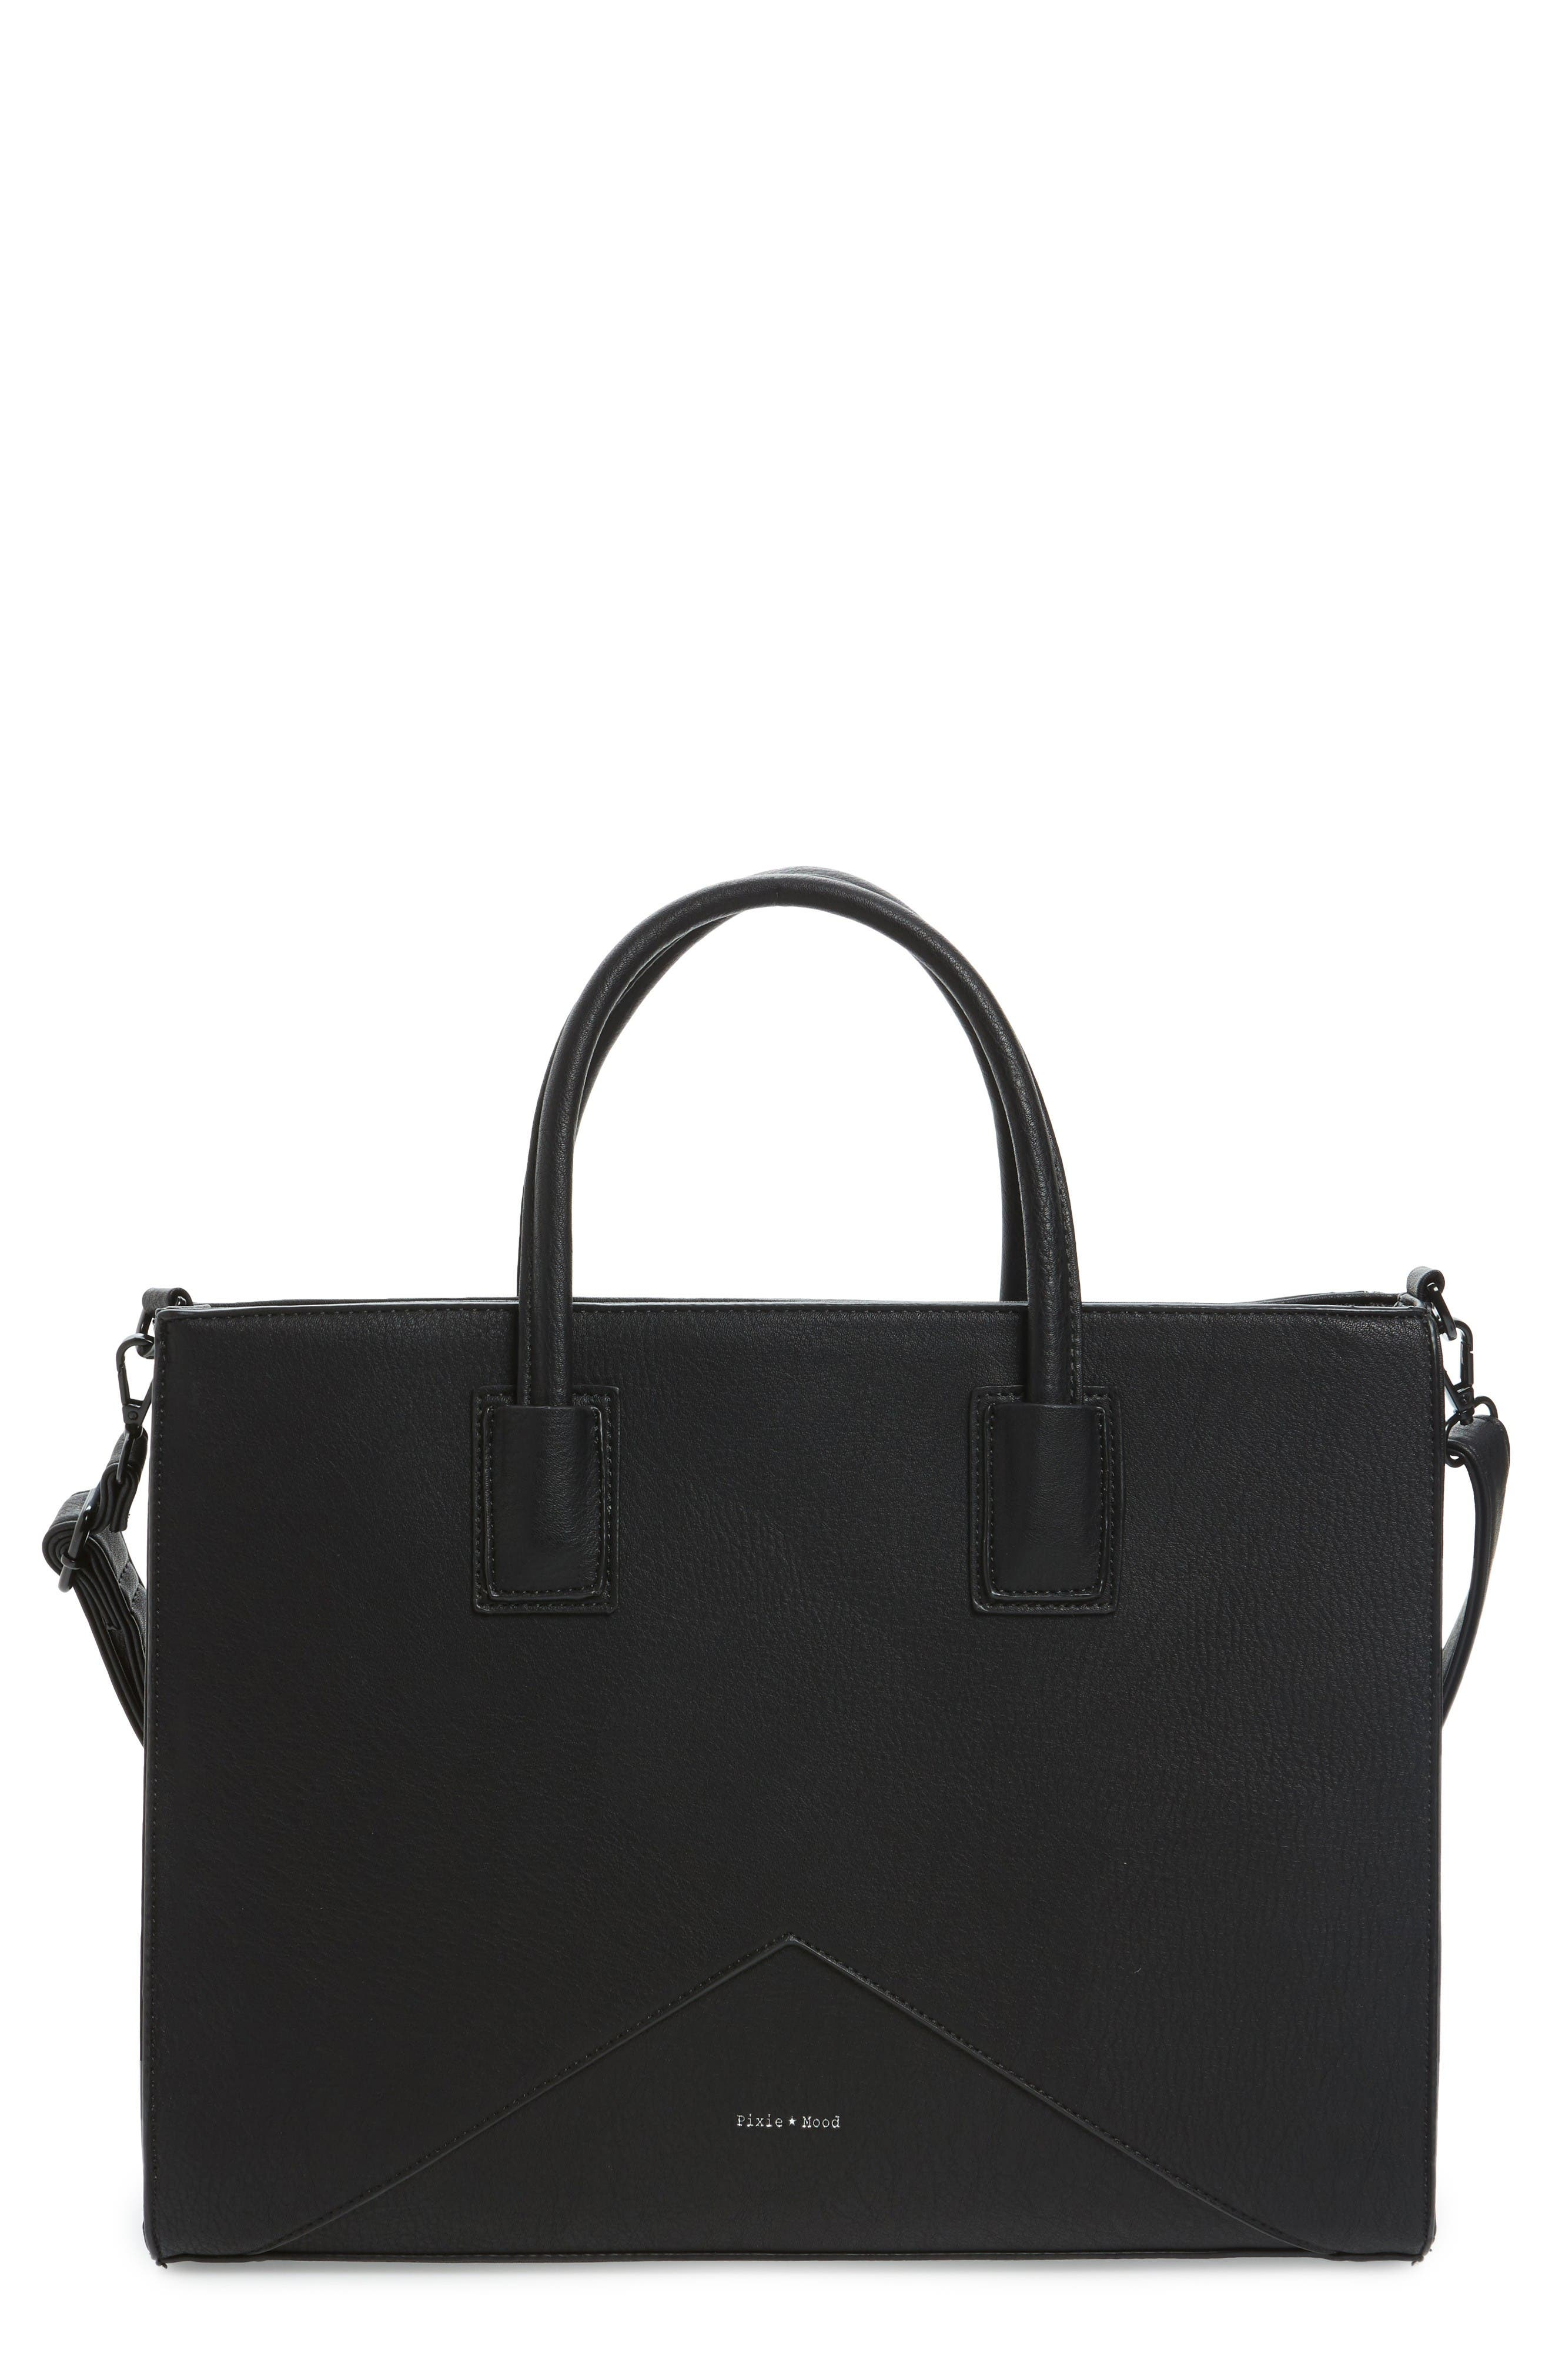 Pixie Mood Faux Leather Tote